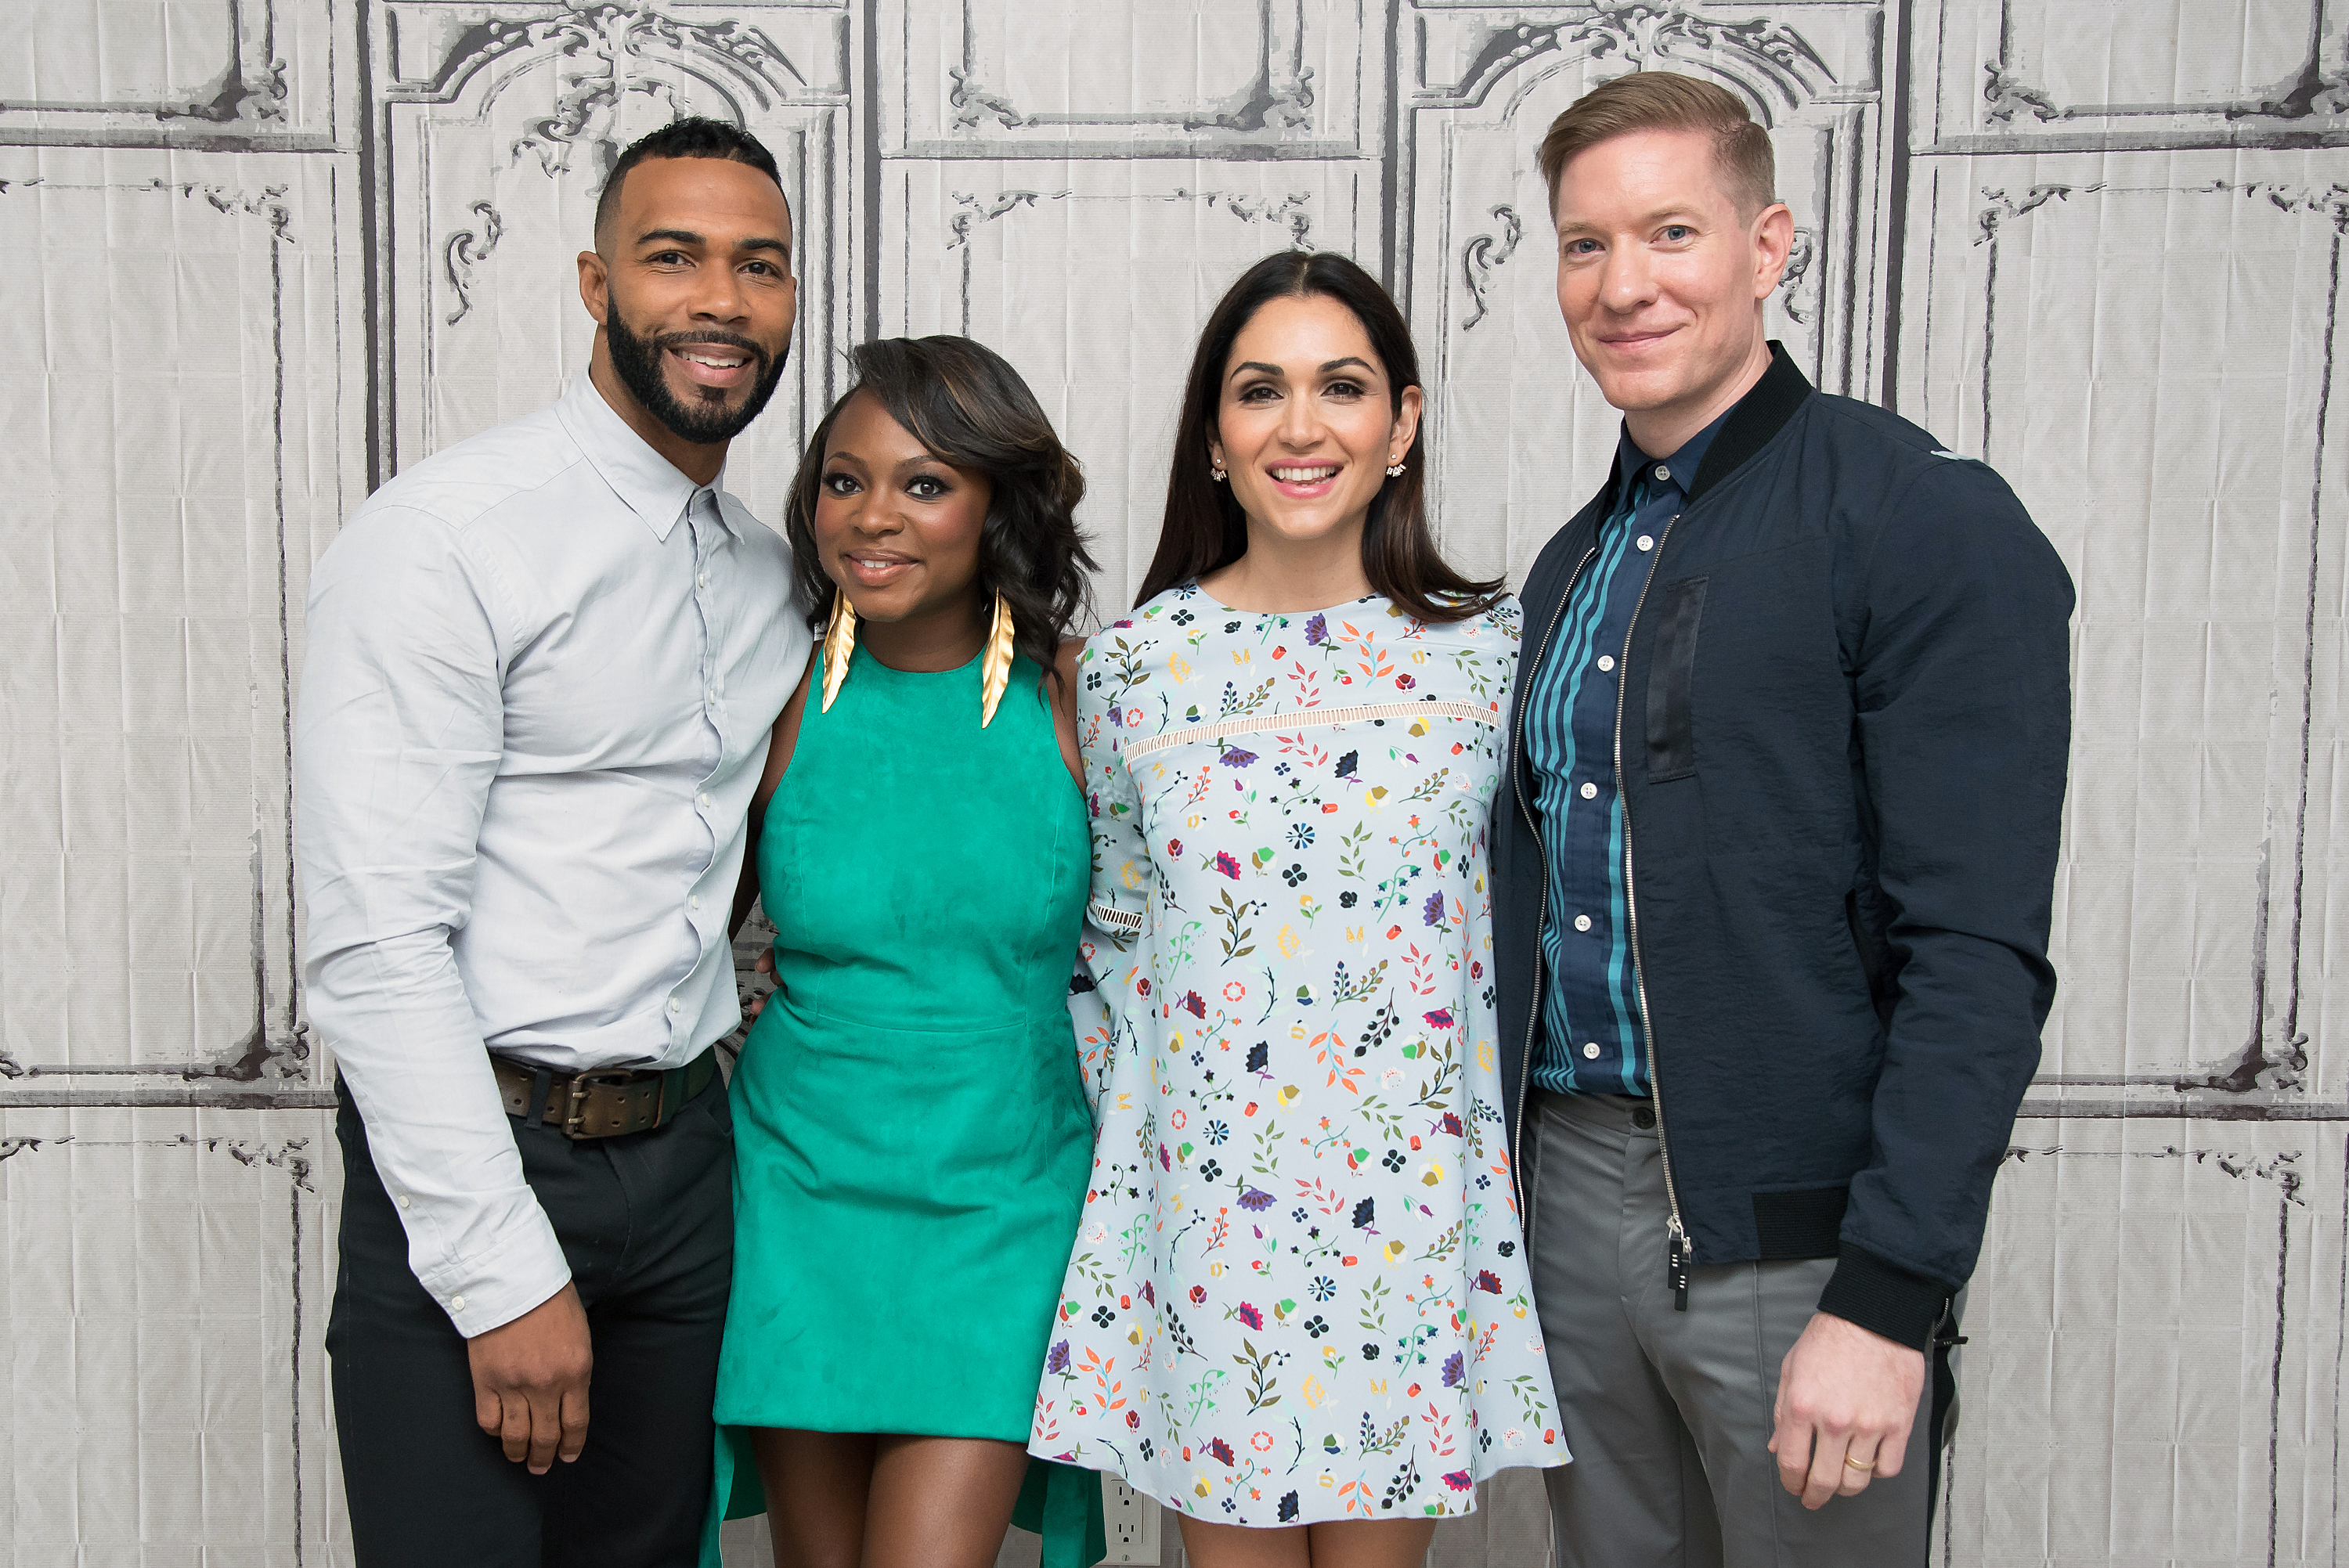 AOL Build Speaker Series - Omari Hardwick, Naturi Naughton, Lela Loren and Joseph Sikora, 'Power'